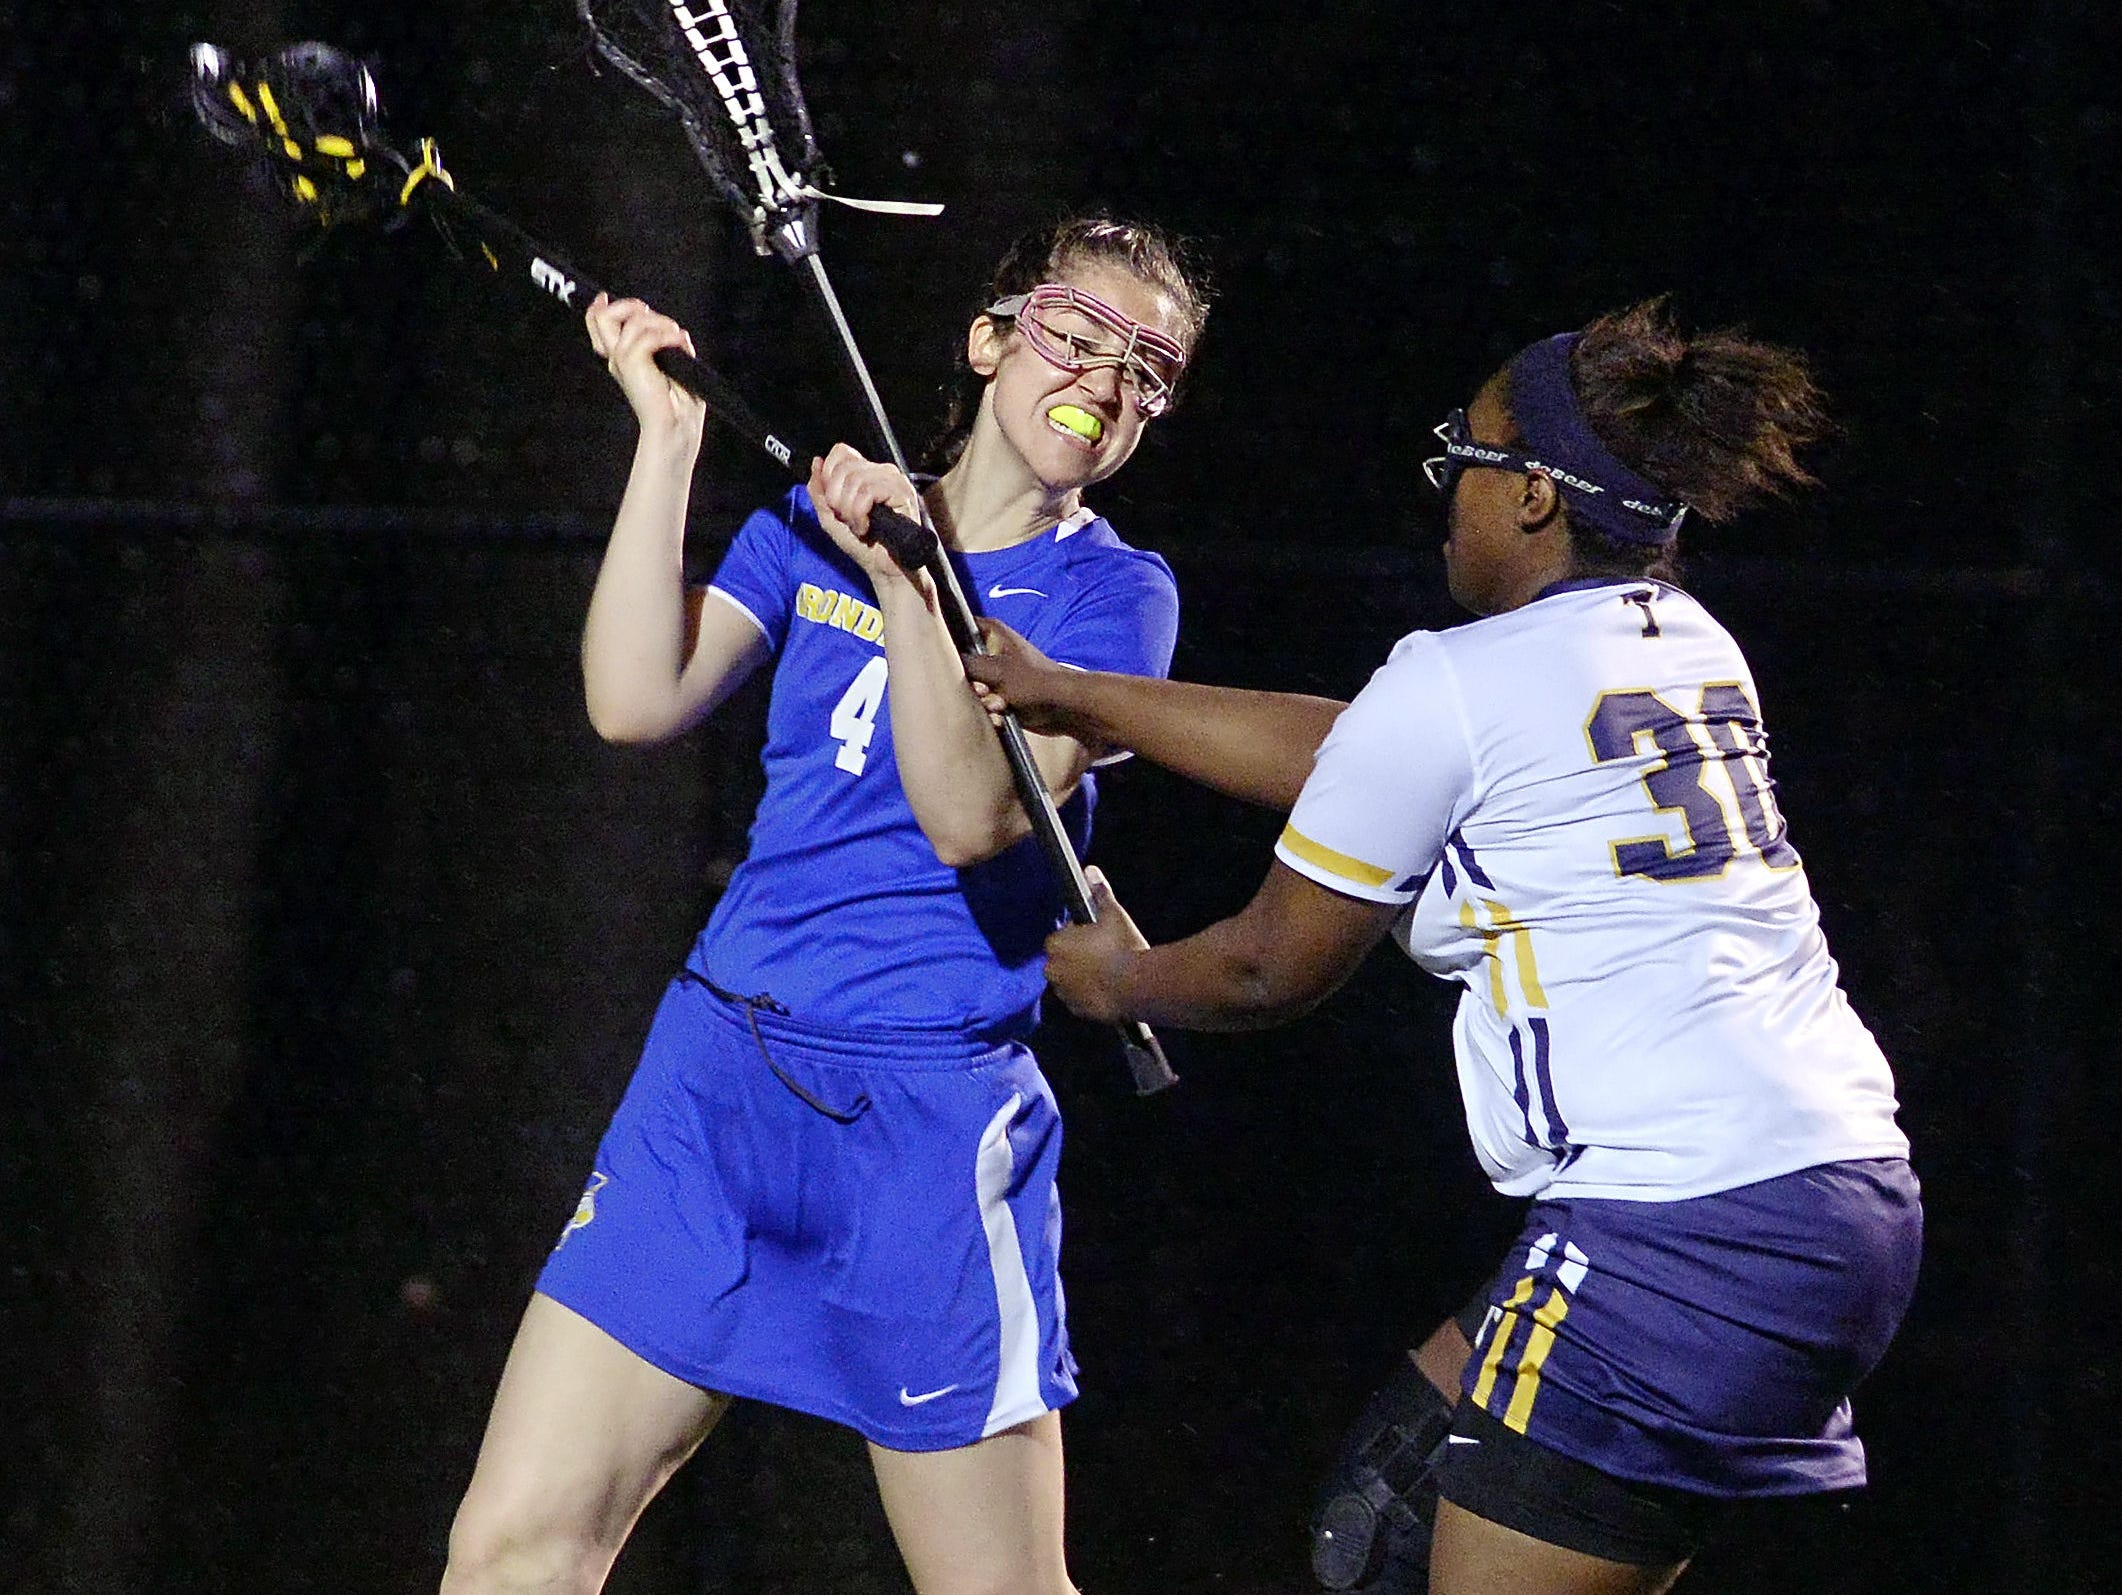 Webster Thomas' Amber Breedy, right, defends against Irondequoit's Mary Clare Bowes.